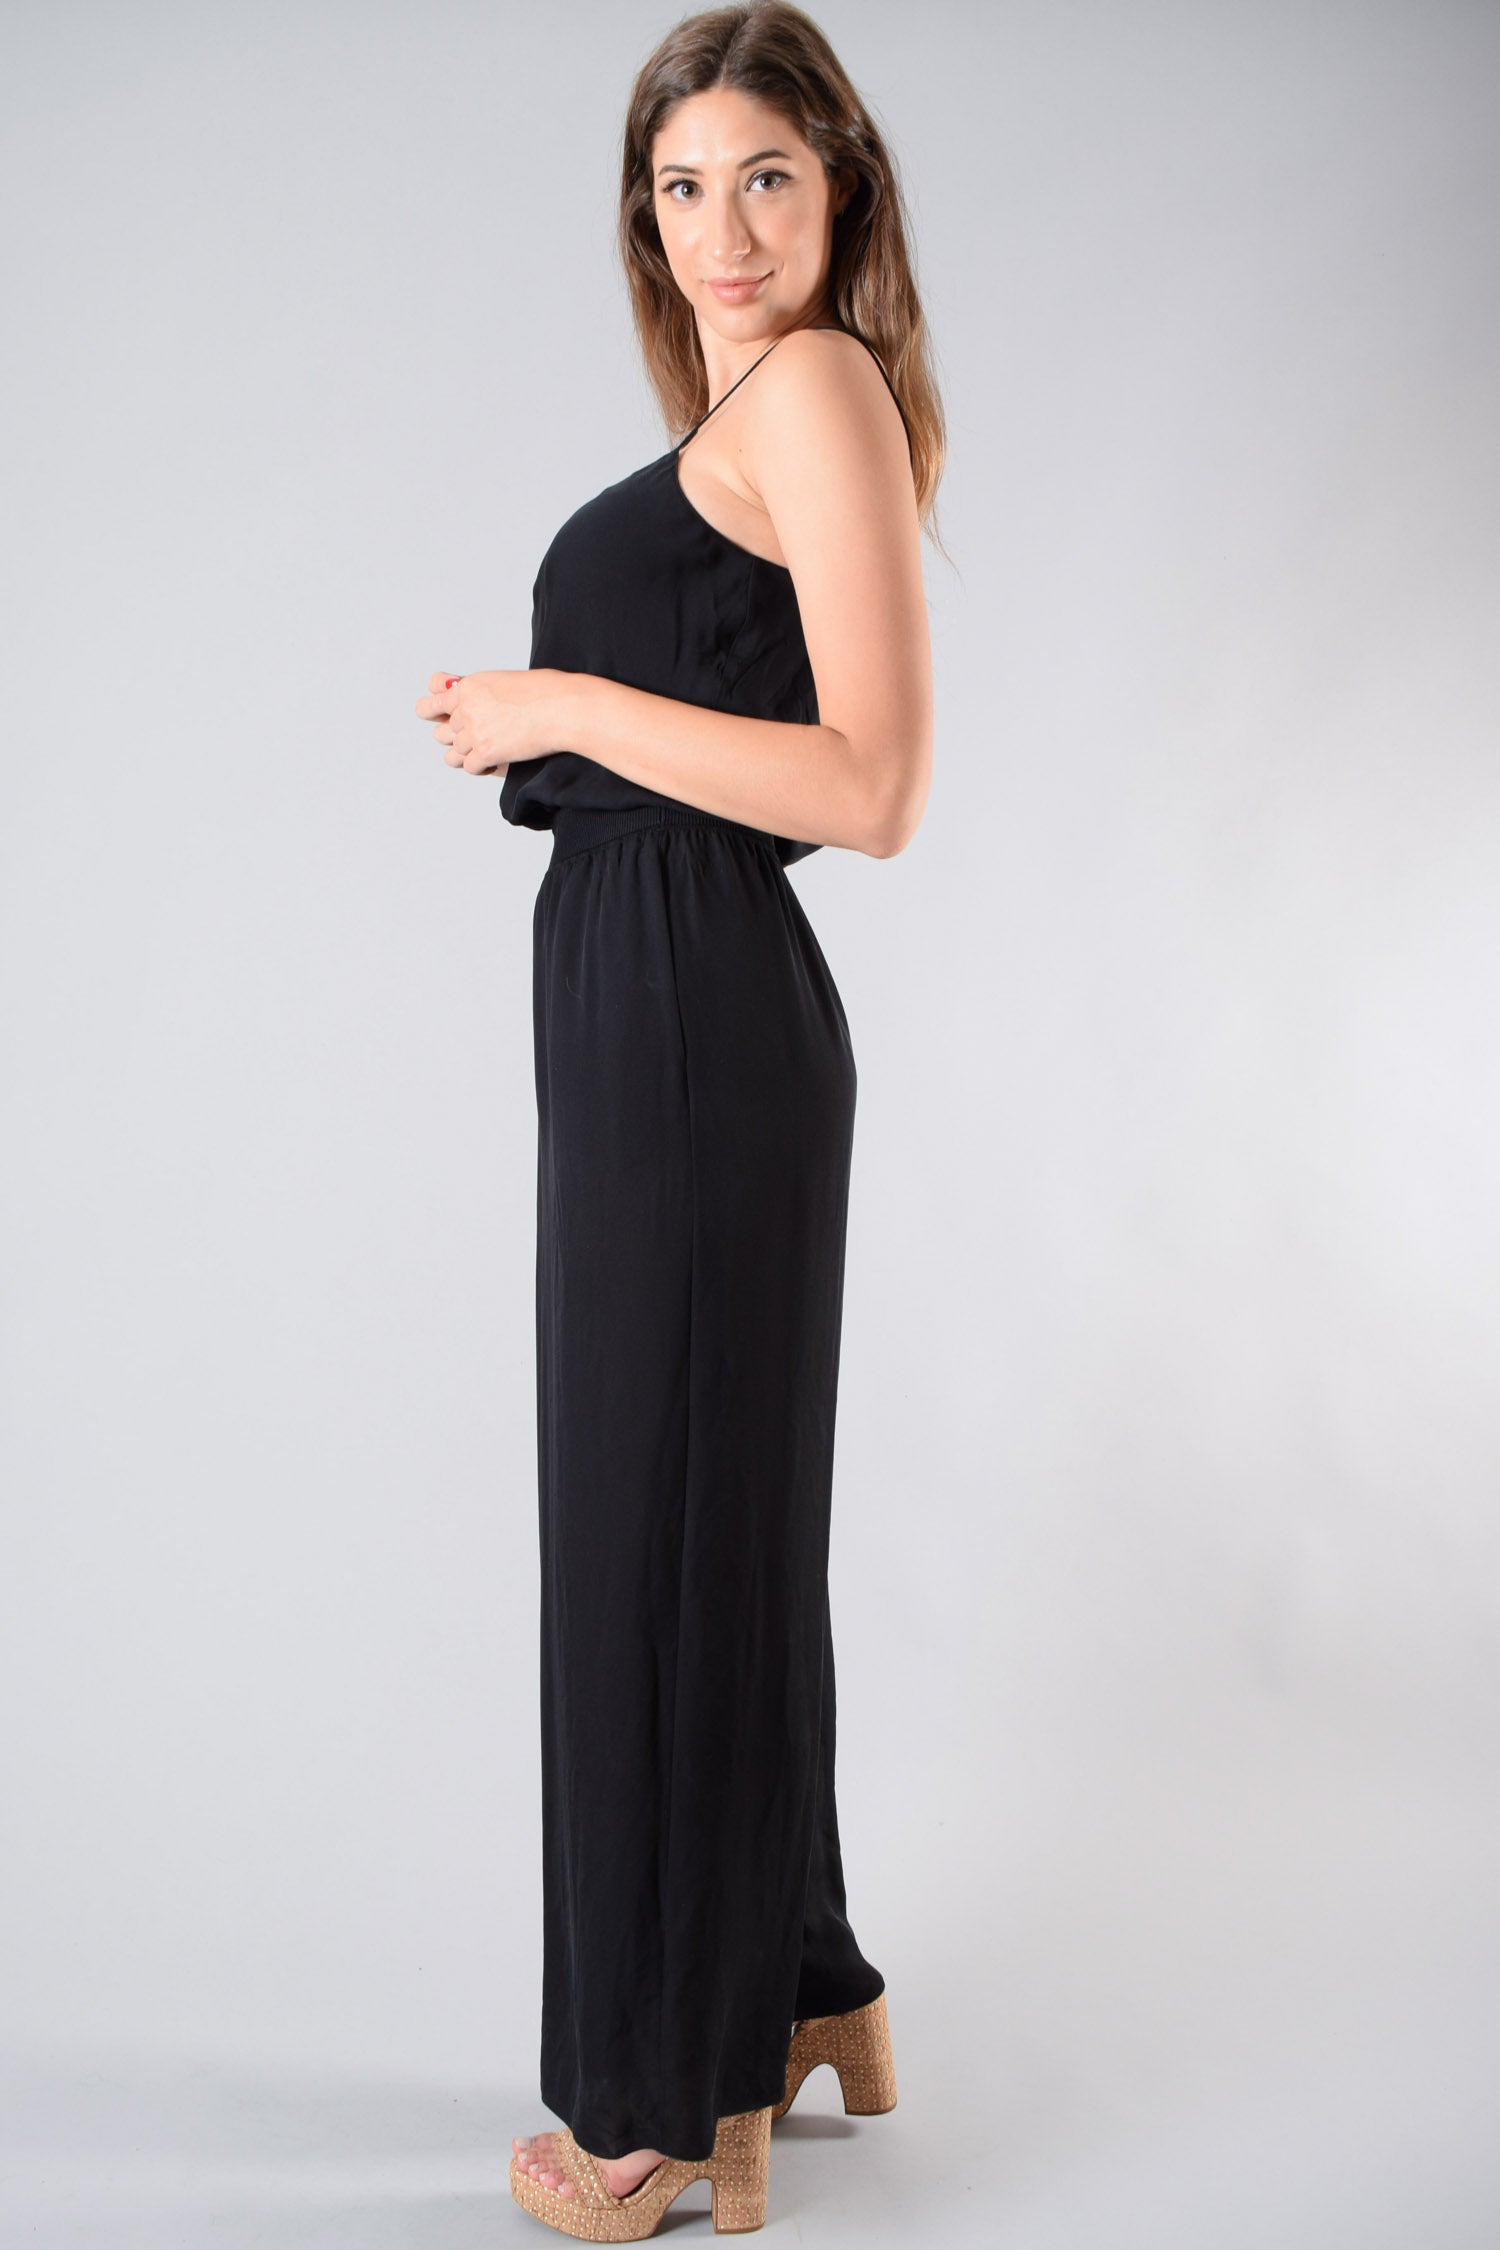 Theory Black Sleeveless Jumpsuit Size M